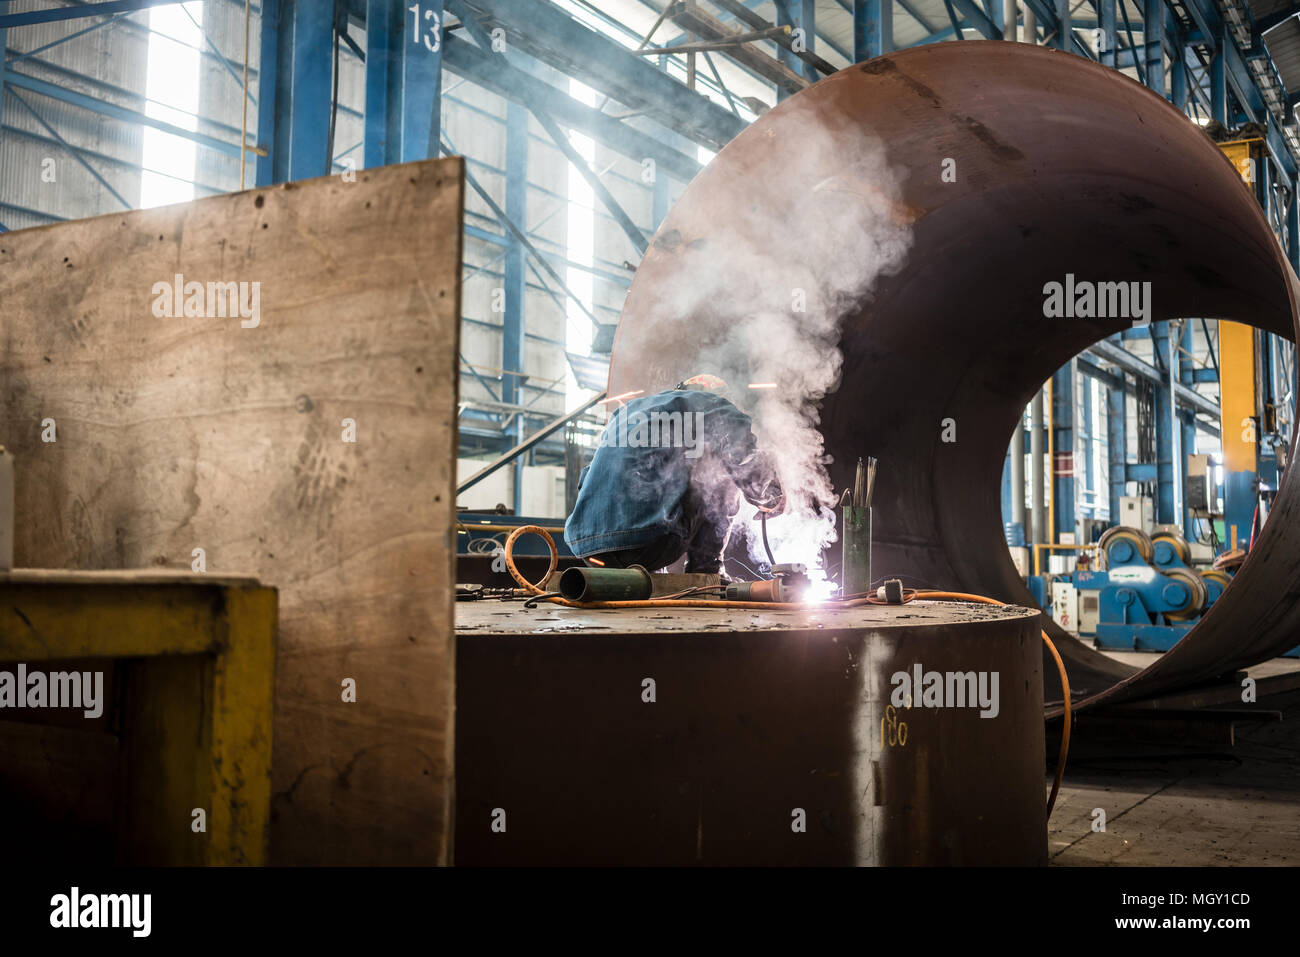 Blue-collar worker welding in the interior of a factory - Stock Image